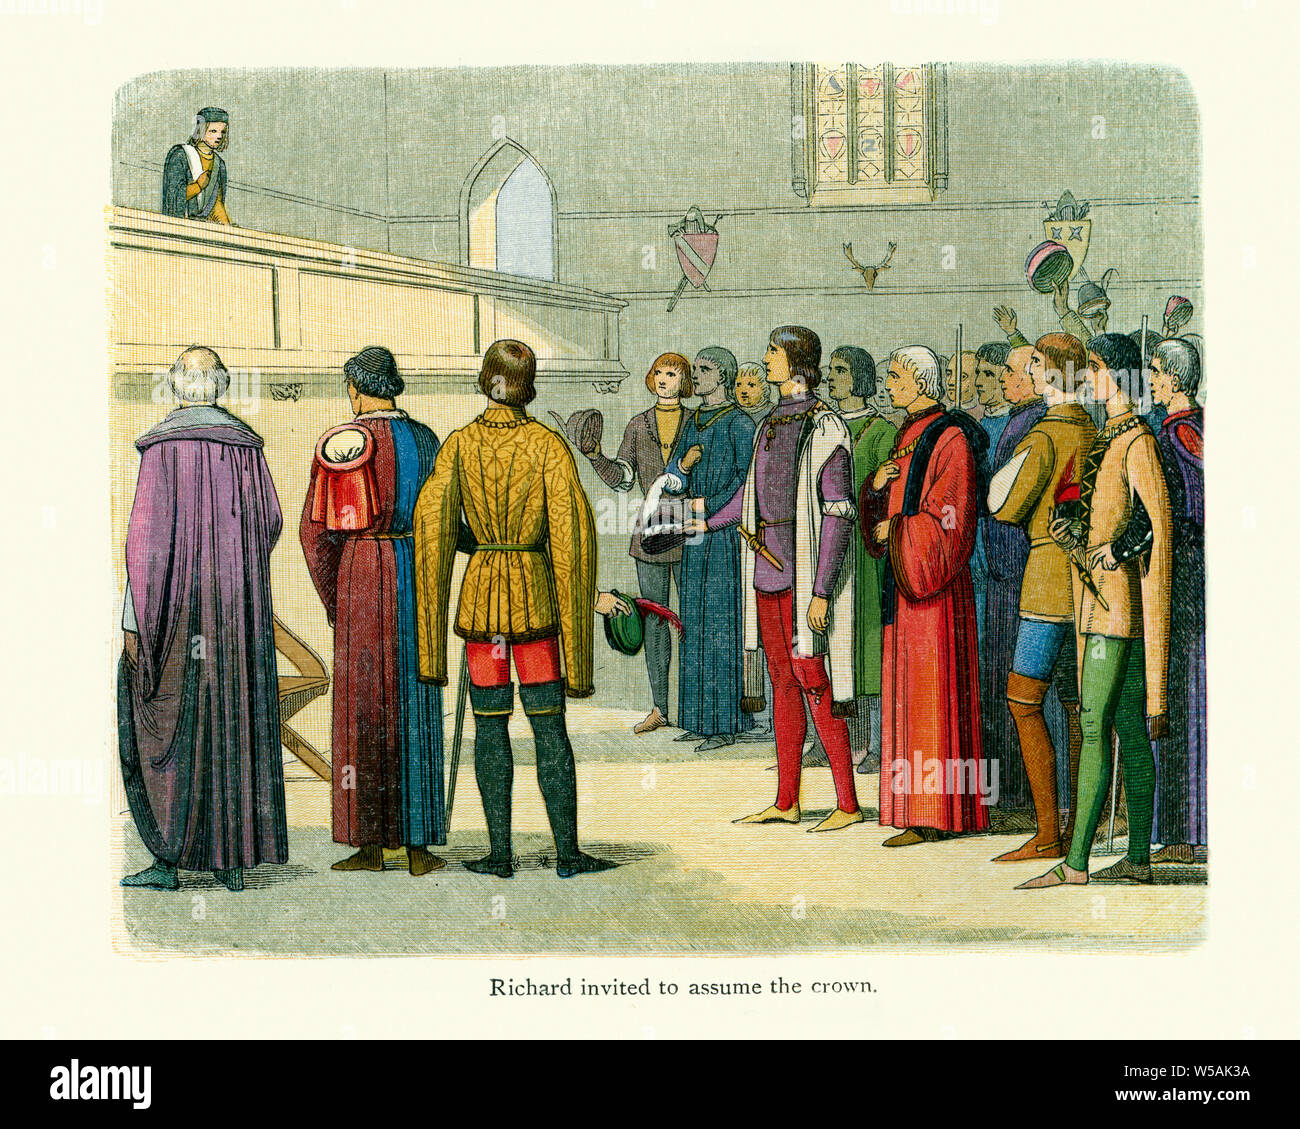 King Richard II being invited to assume the crown Stock Photo